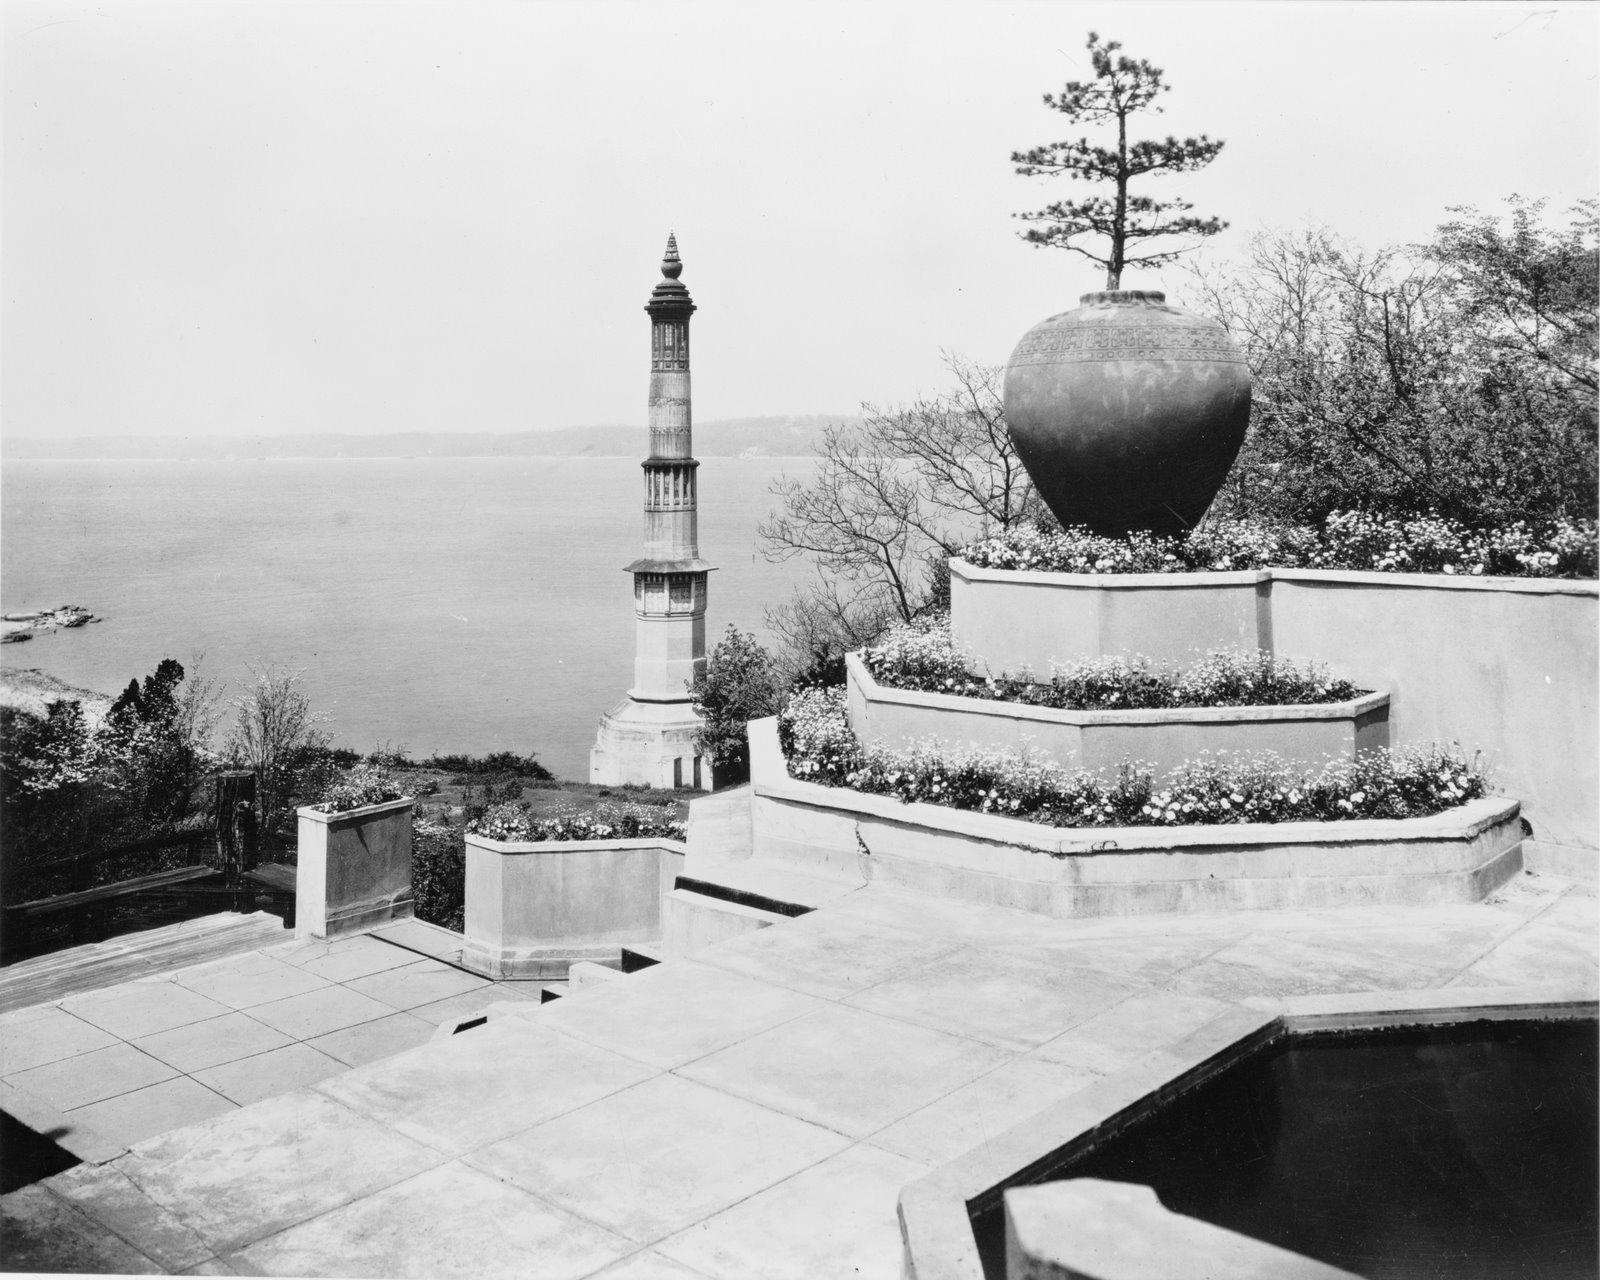 Historical photo of the minaret at Laurelton Hall (courtesy of http://www.oldlongisland.com/)